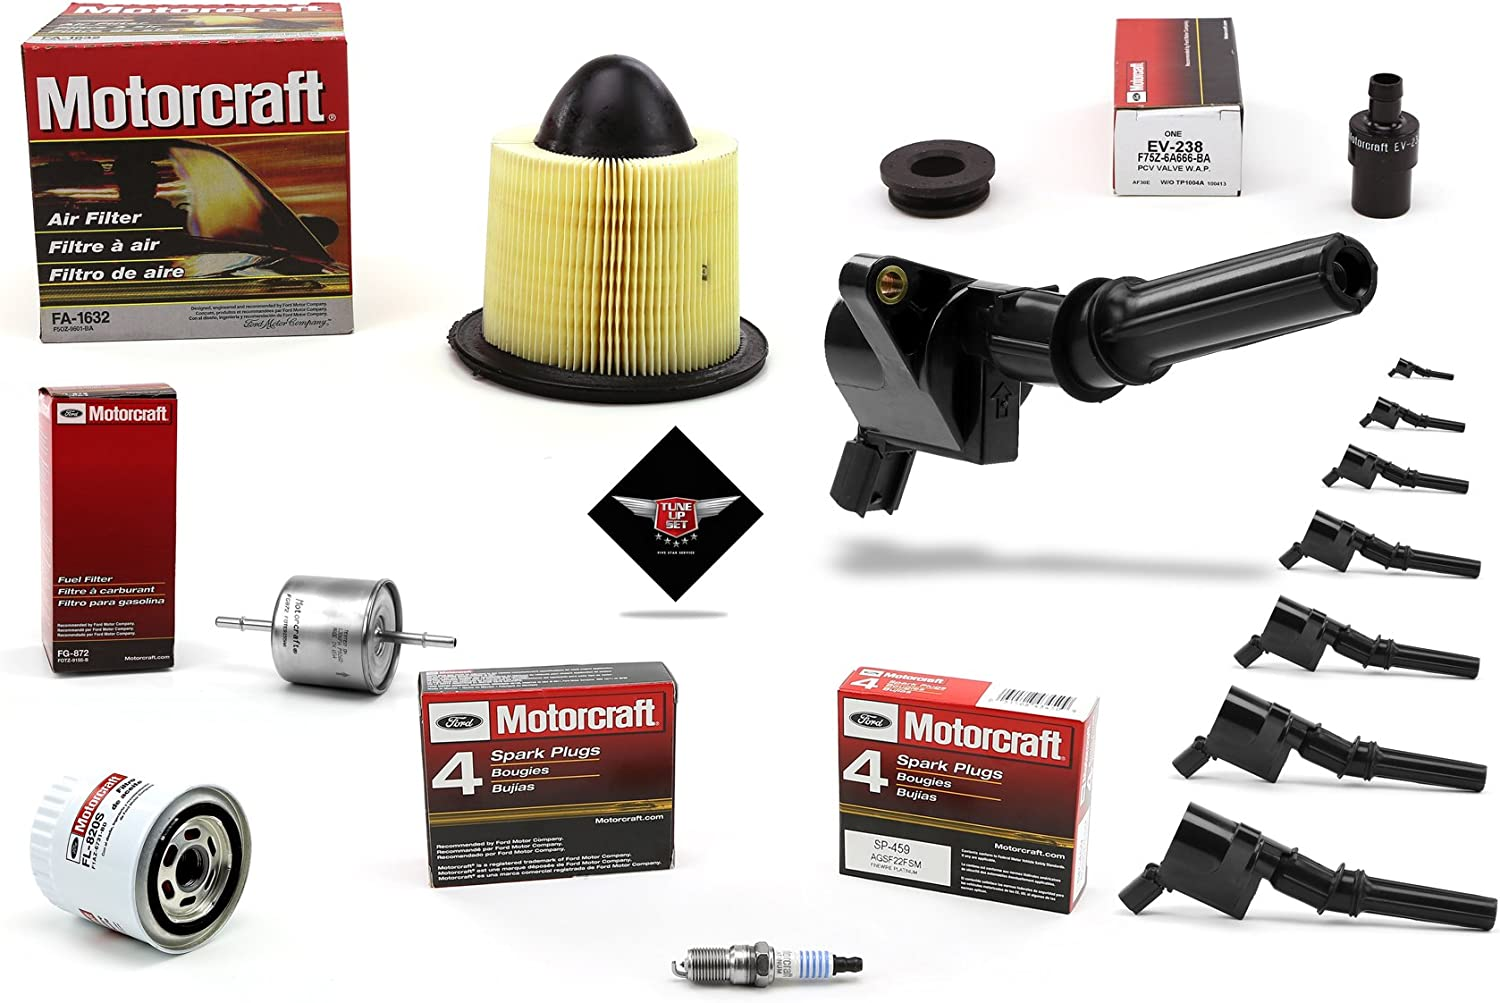 Tune Up Kit 1997 Expedition V8 5.4L Heavy Duty Ignition Coil DG508 ...